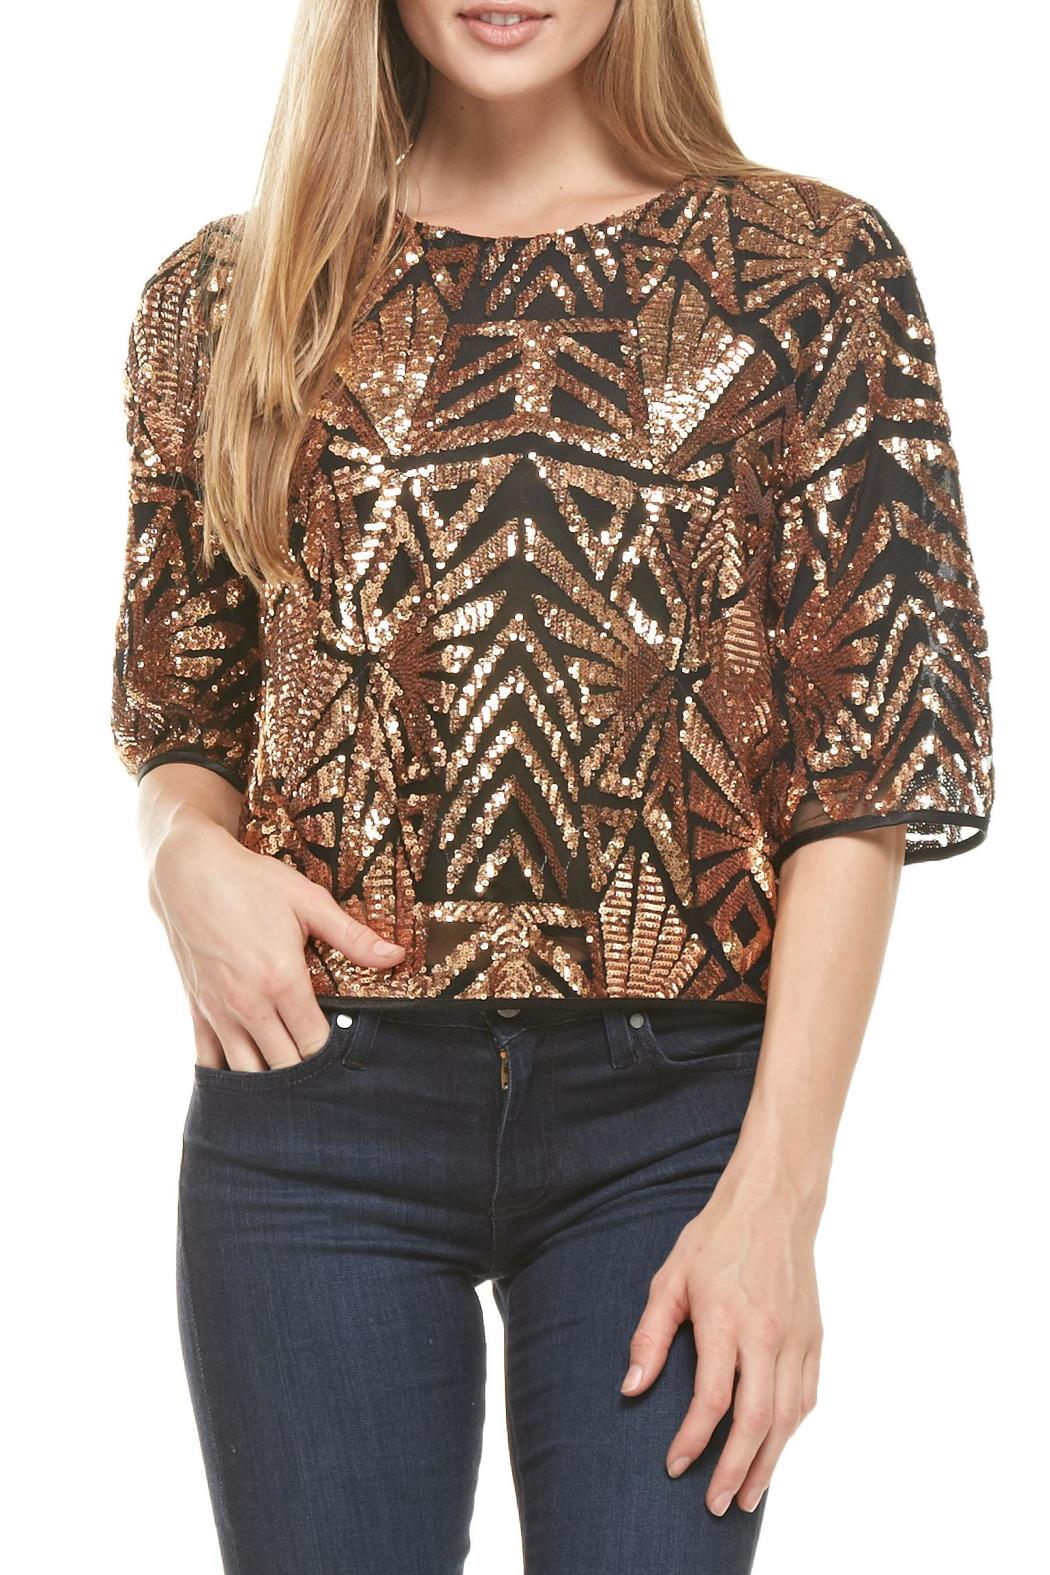 Everly Rose-Gold Sequins Top - Main Image